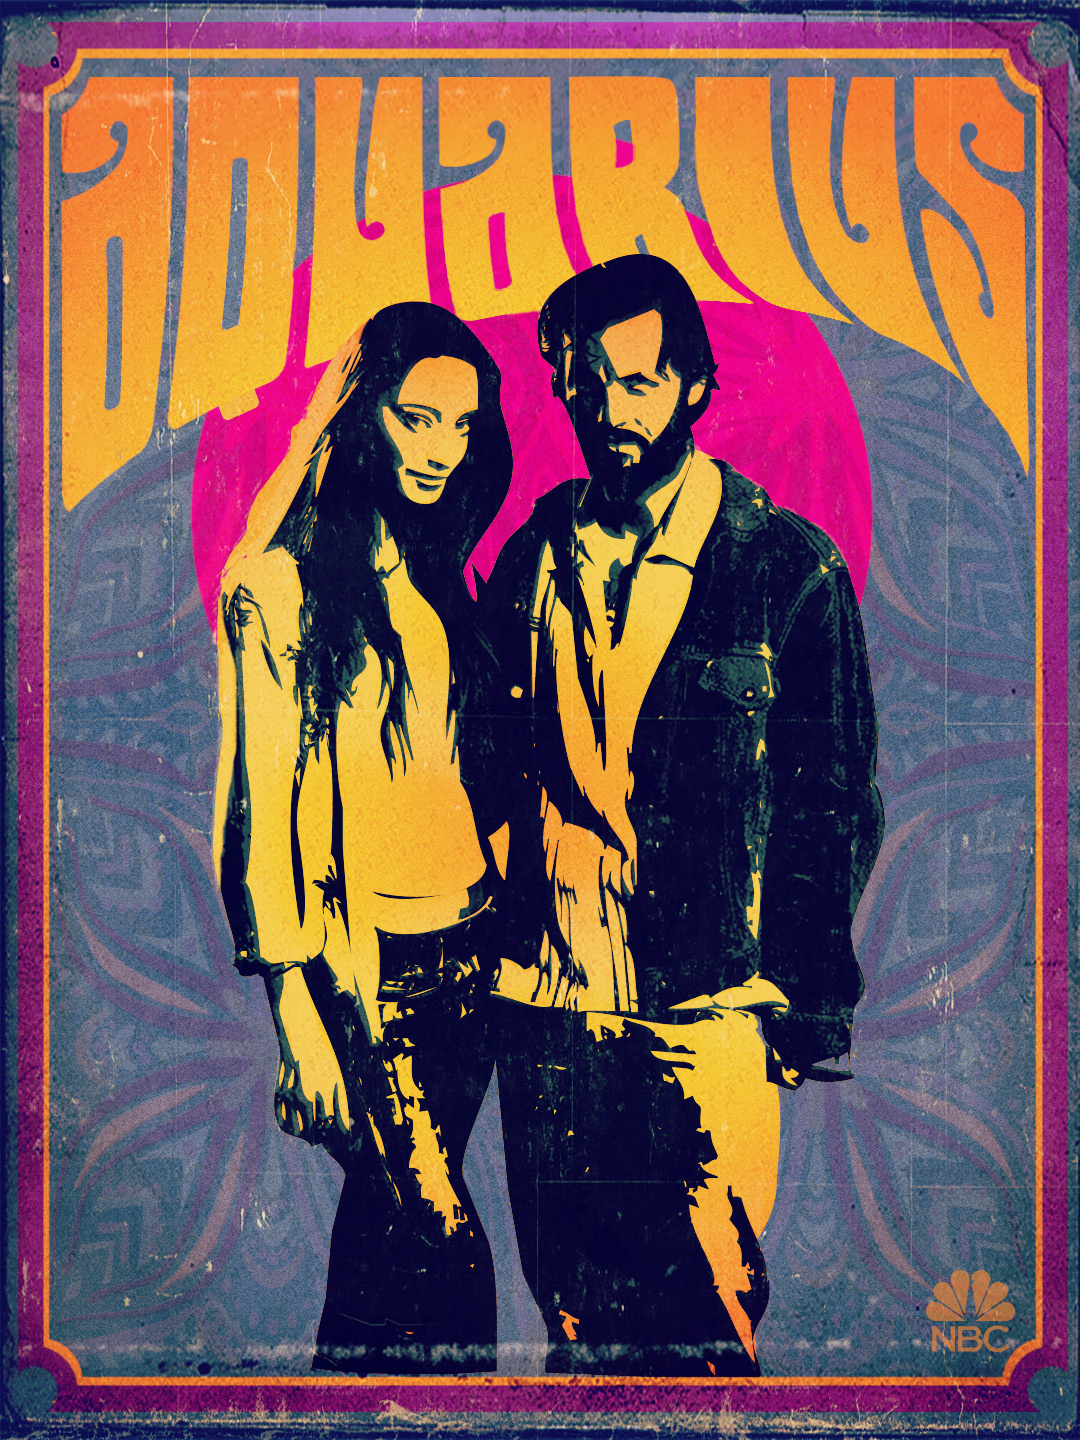 Aquarius Poster - Emma Karn and Charles Manson